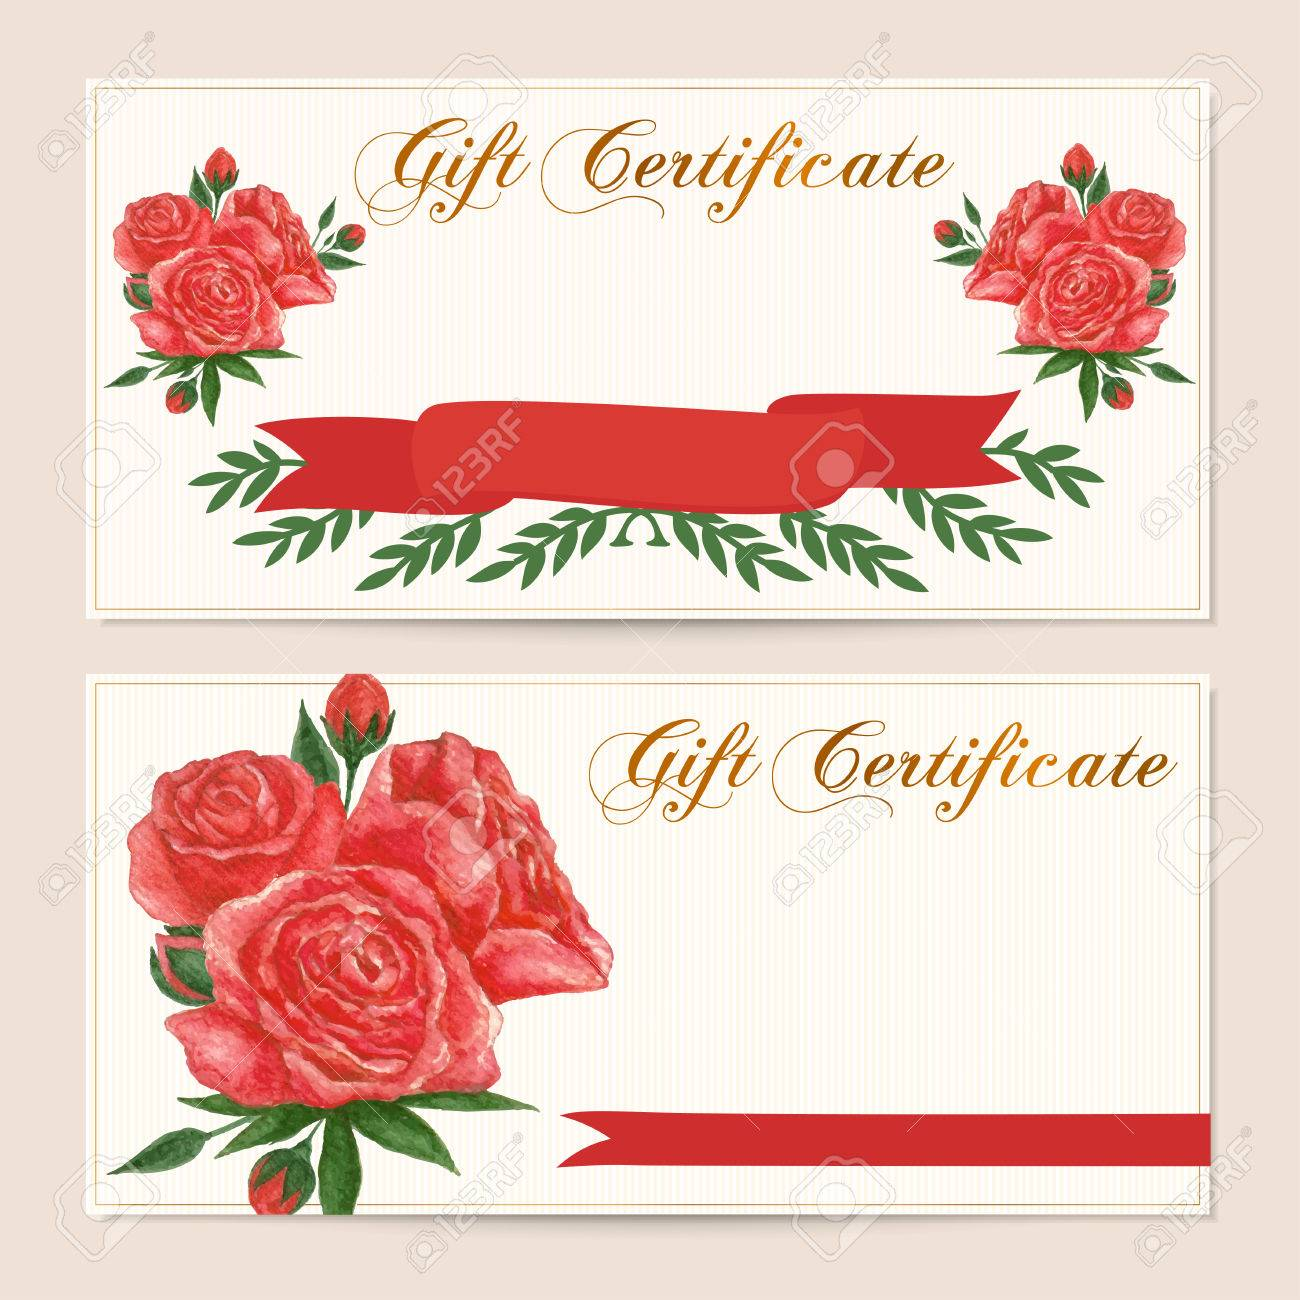 Gift Certificate Voucher Coupon Reward Gift Card Template – Voucher Card Template